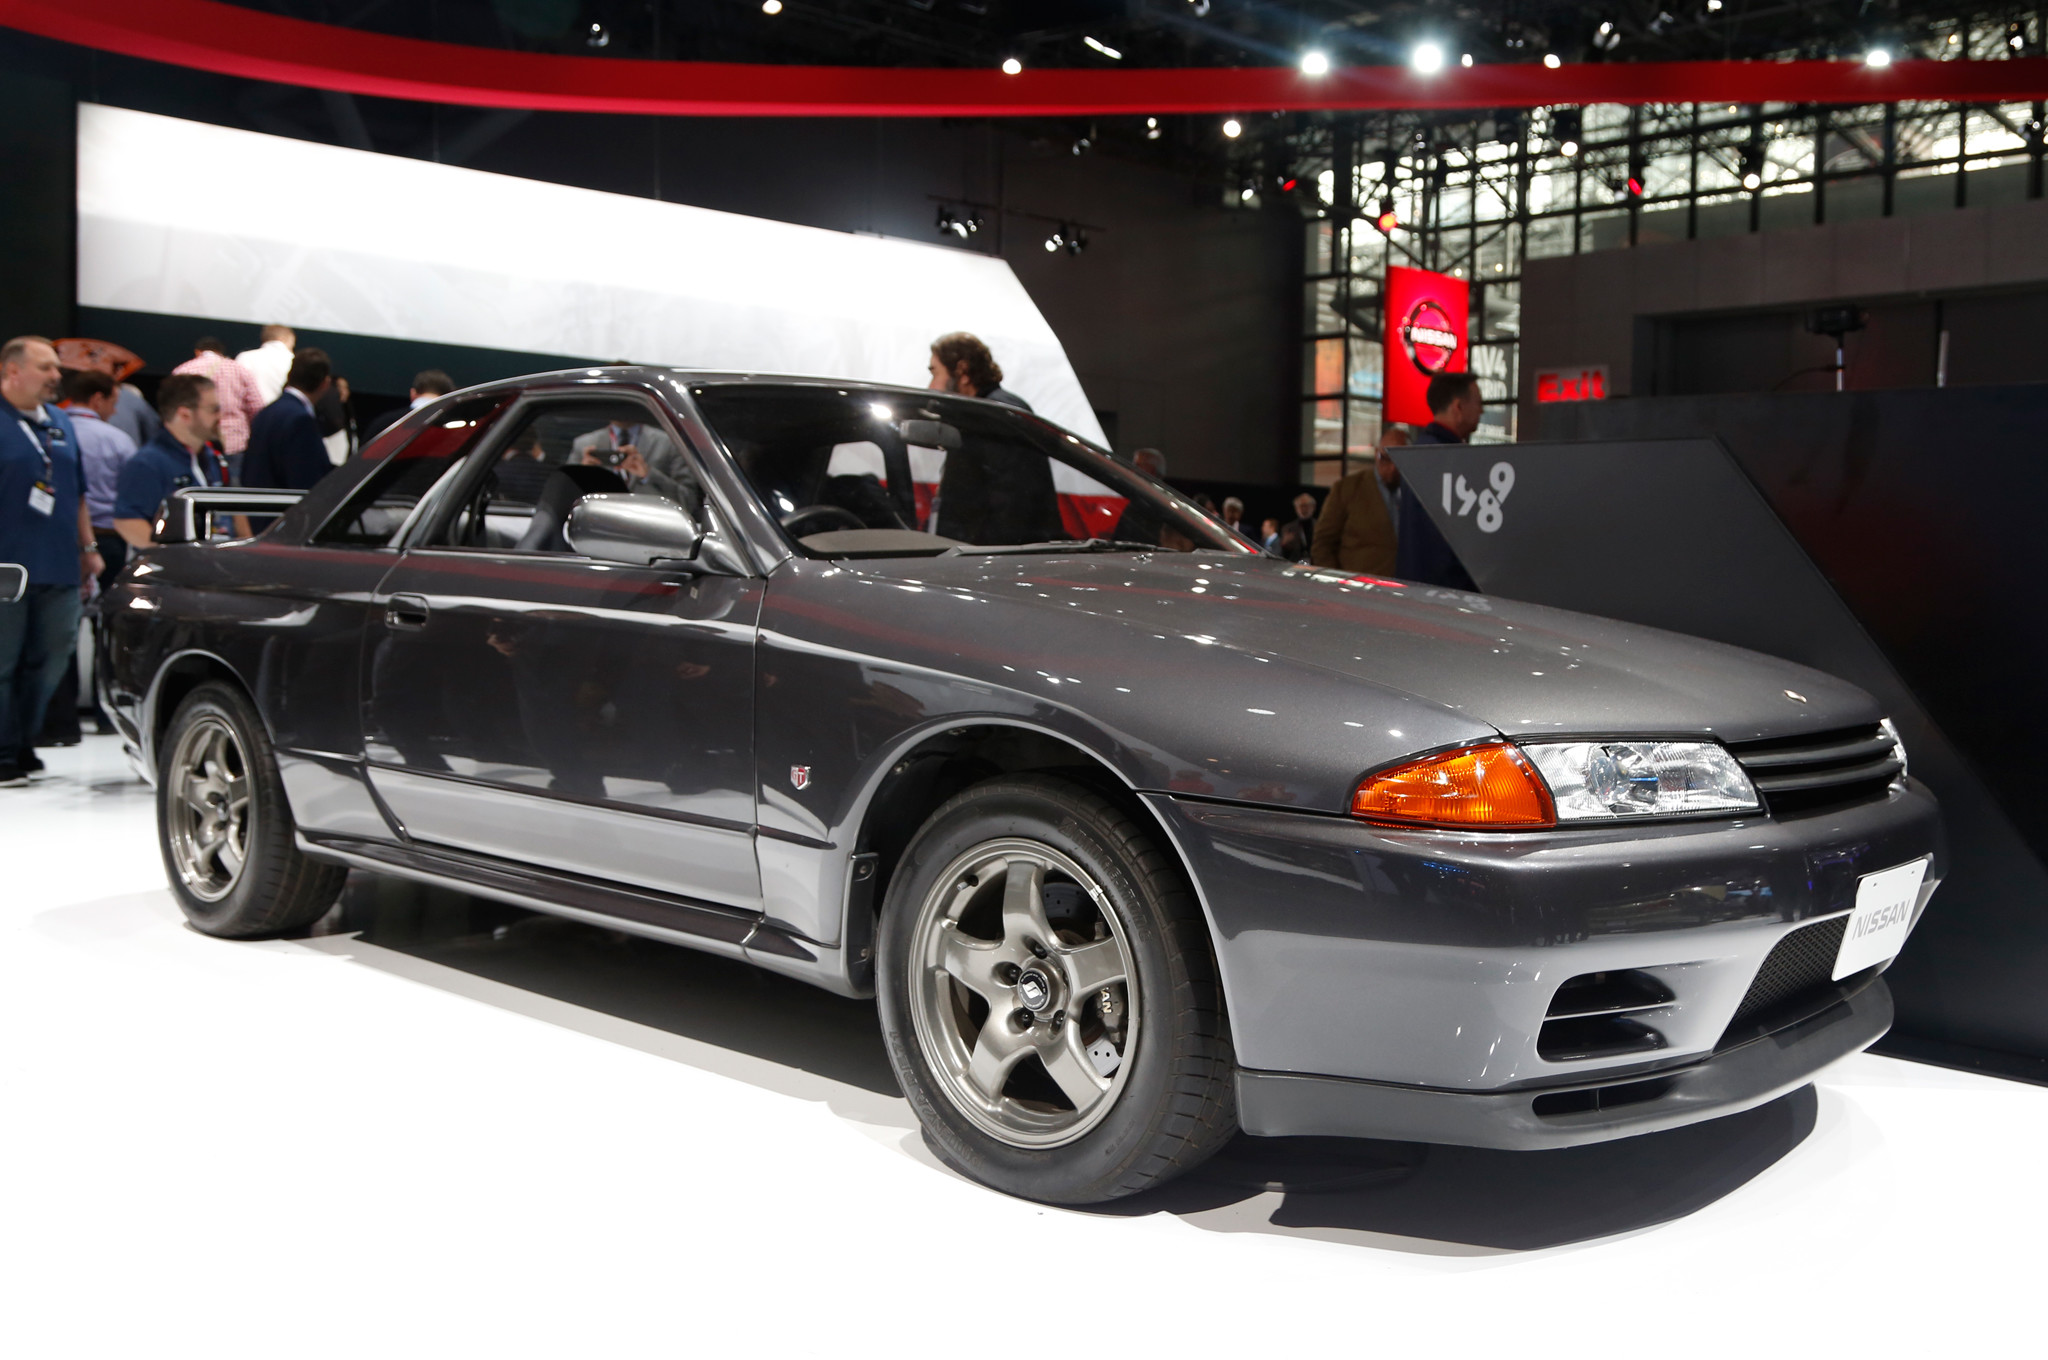 2048x1360 Nissan Skyline R32 Wallpapers - WallpaperPulse